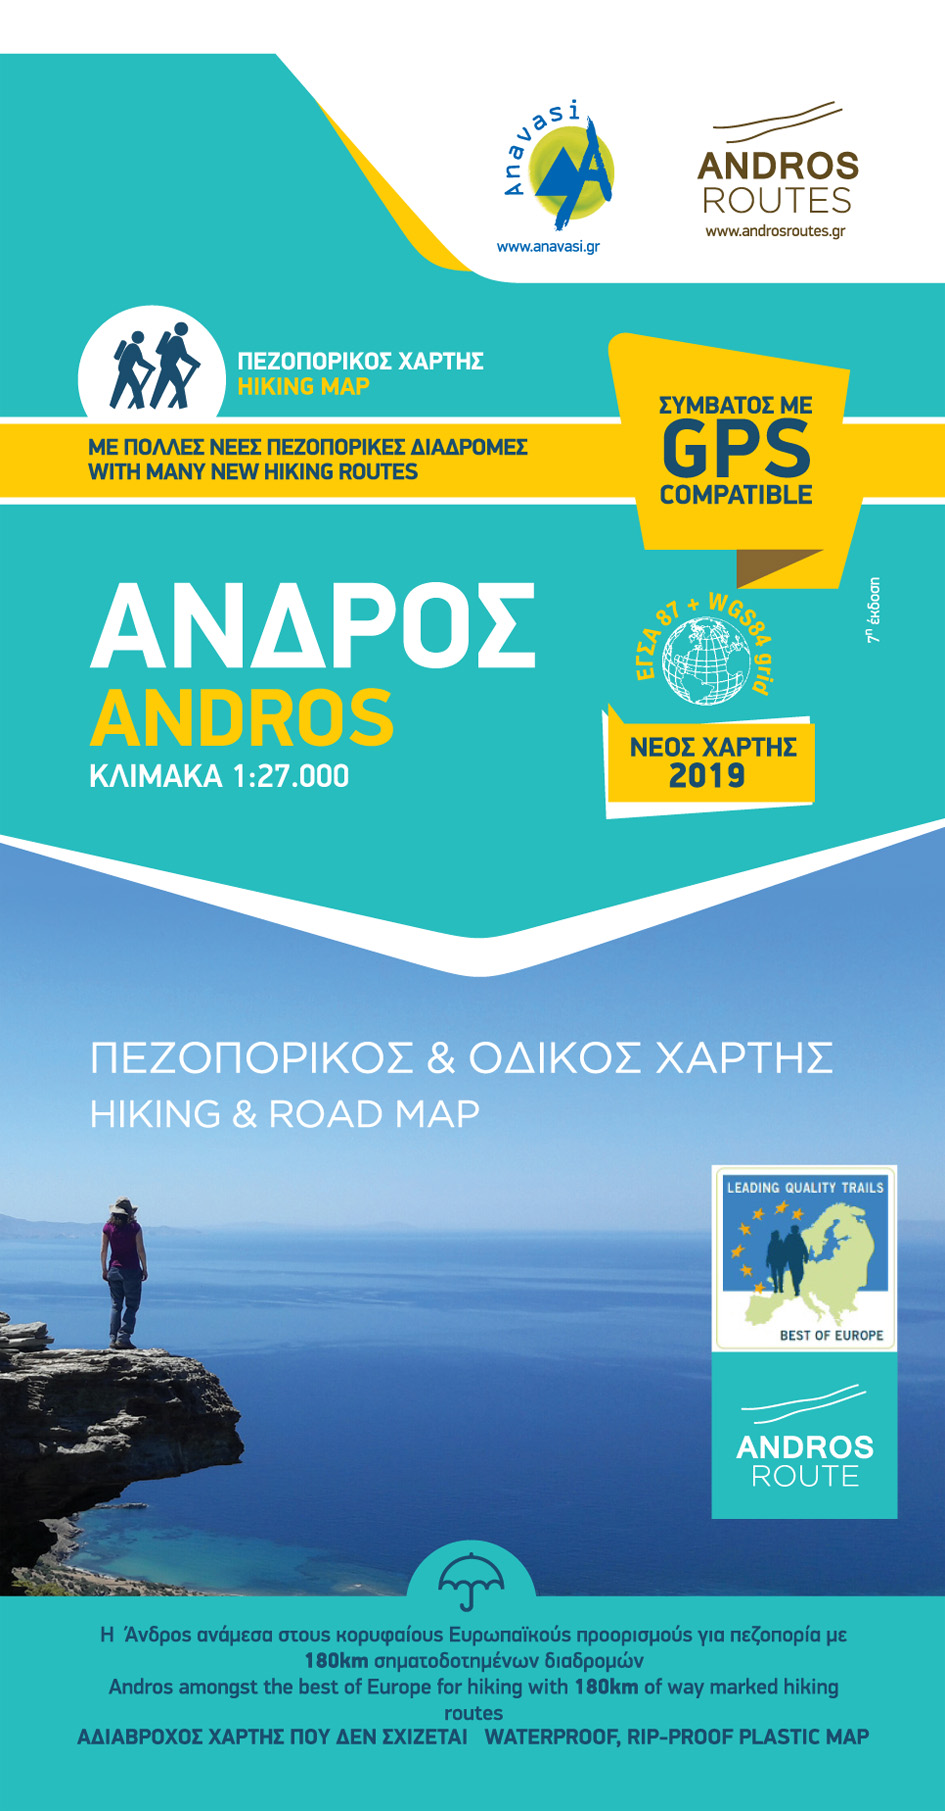 Andros • Hiking map 1:27.000